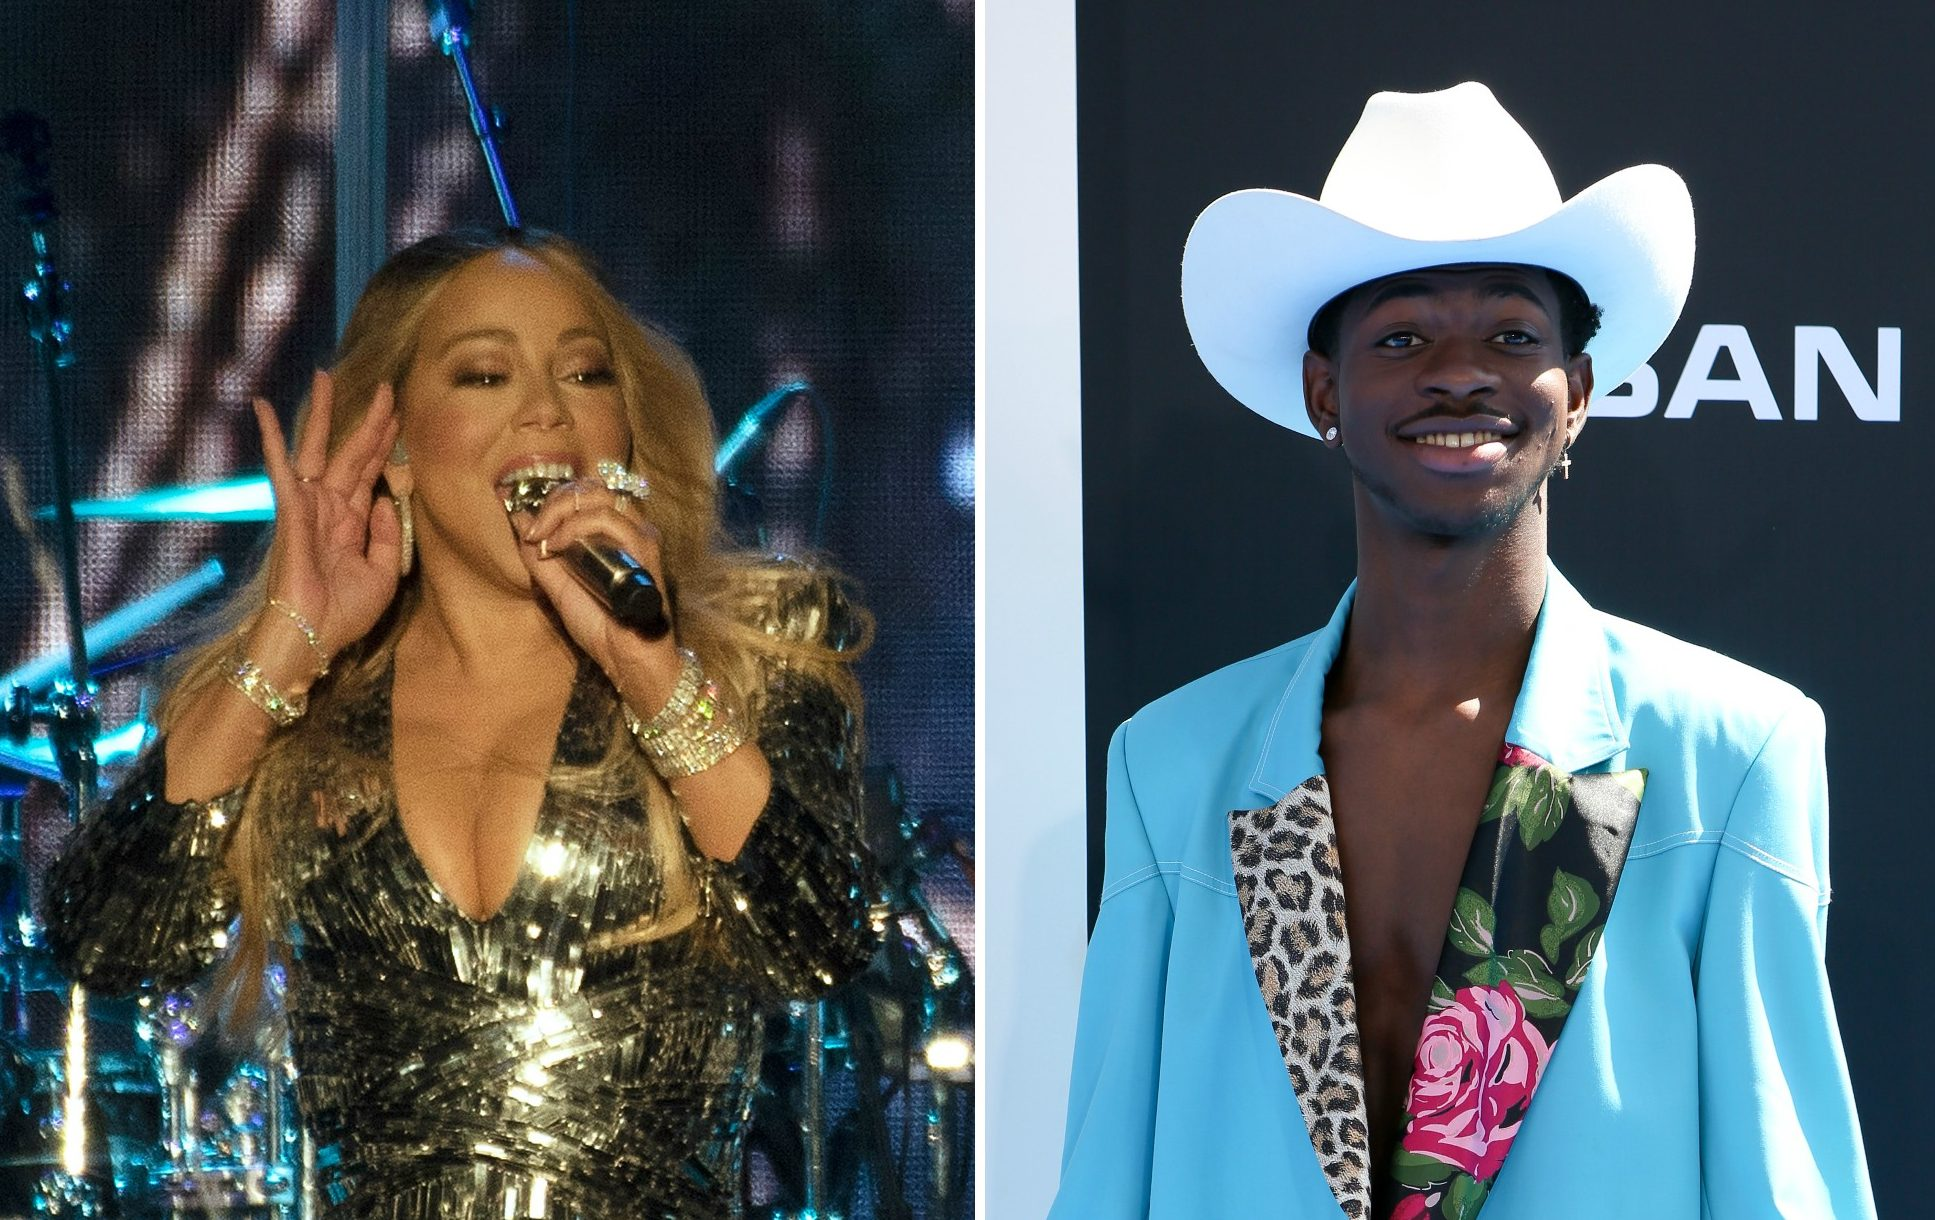 Mariah Carey and Lil Nas X side-by-side